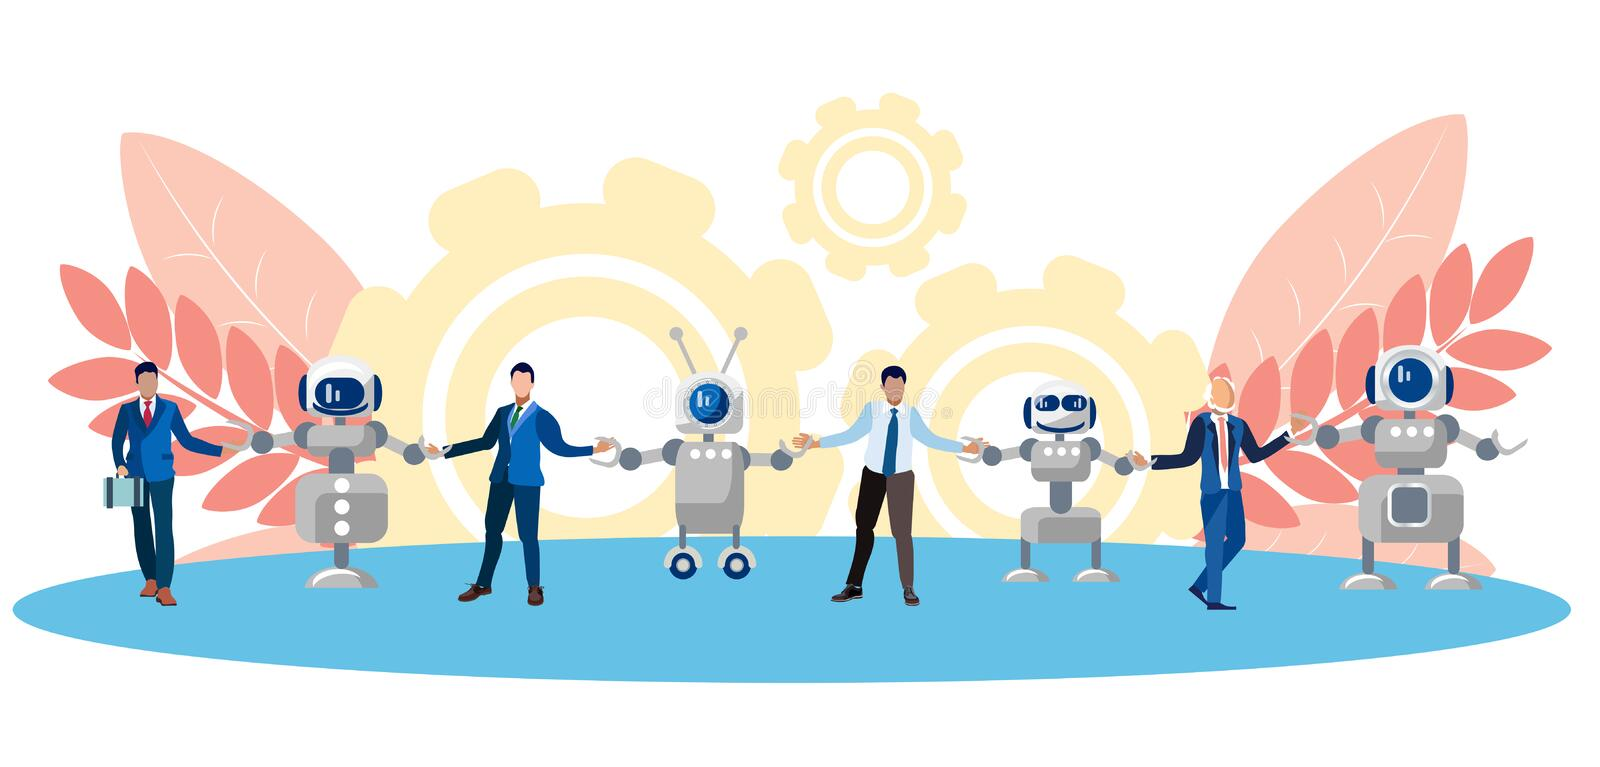 Metaphor of friendship, cooperation of people and technology. Chain of human and robots. In minimalist style. Flat. Isometric vector illustration stock illustration